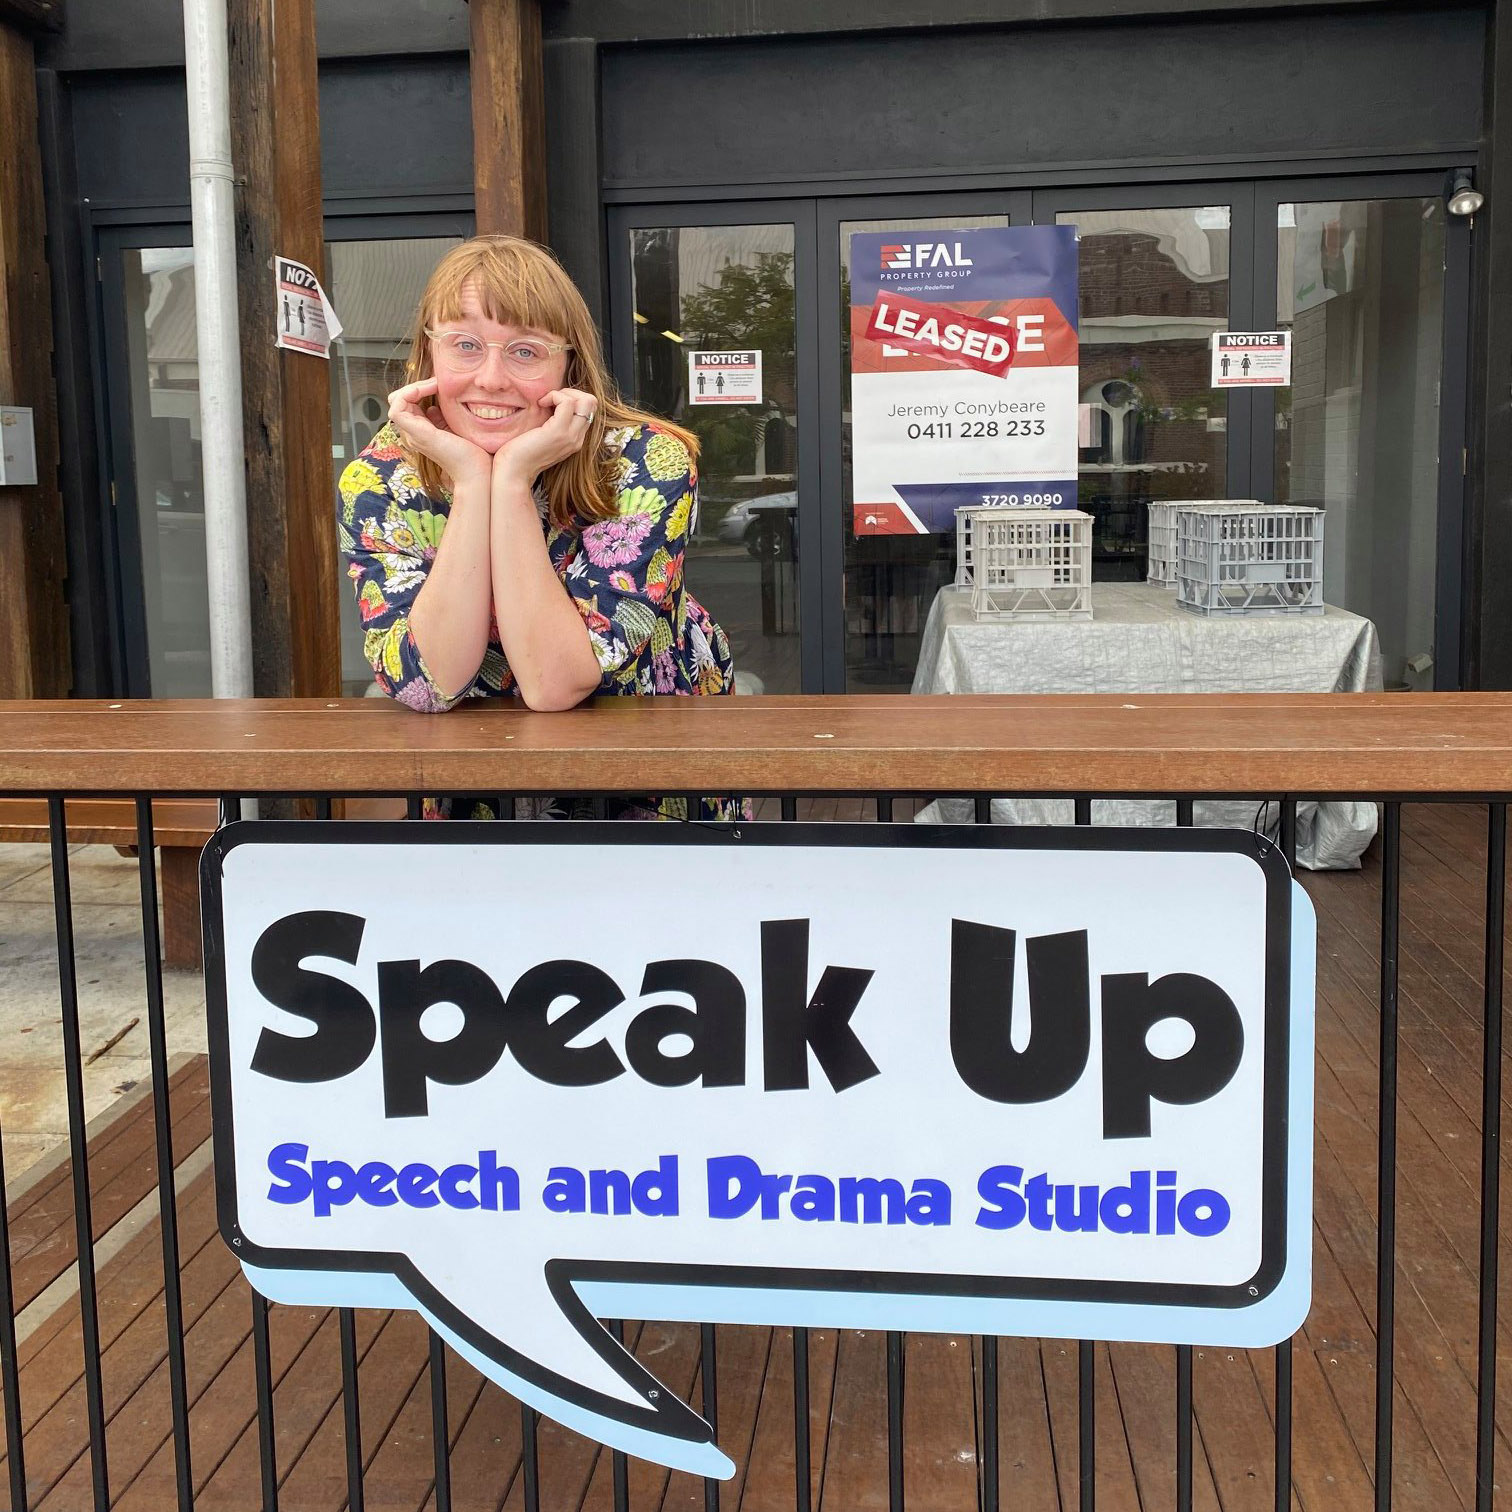 speech and drama classes in sherwood